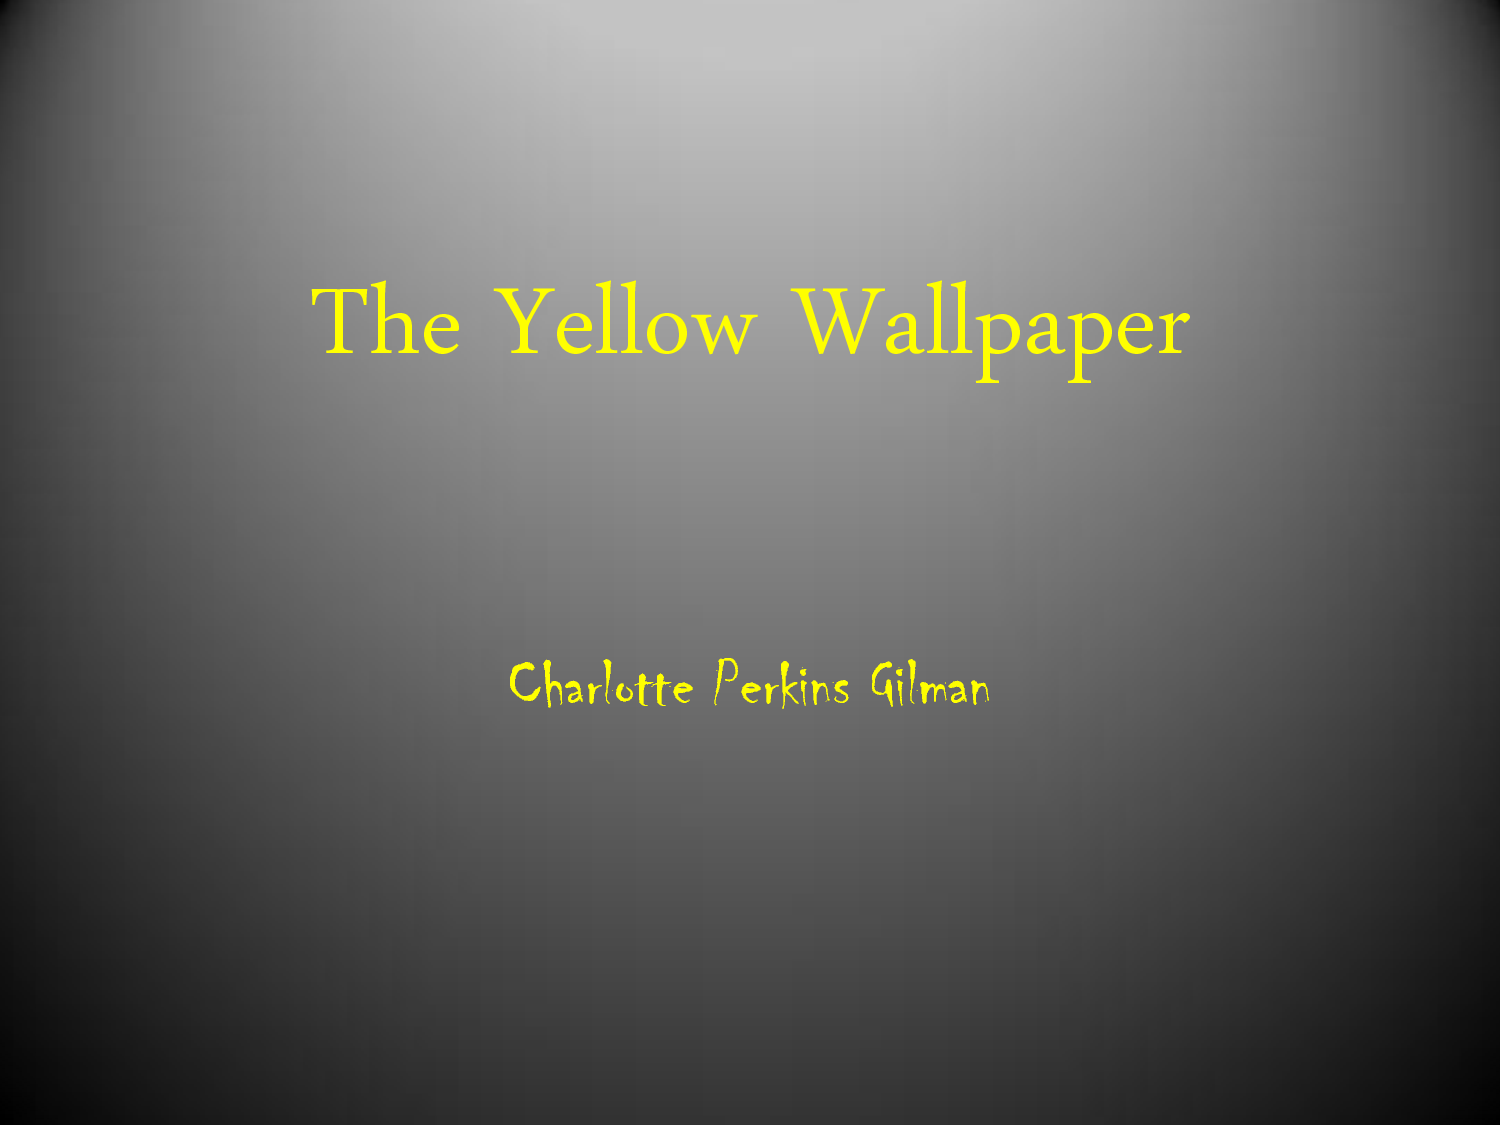 the ìyellow wallpaperî allegory essay Gilman's gothic allegory: rage and redemption in the yellow wallpaper johnson, greg // studies in short fictionfall89, vol 26 issue 4, p521 discusses the 19th-century short story 'the yellow wallpaper,' by charlotte perkins gilman.